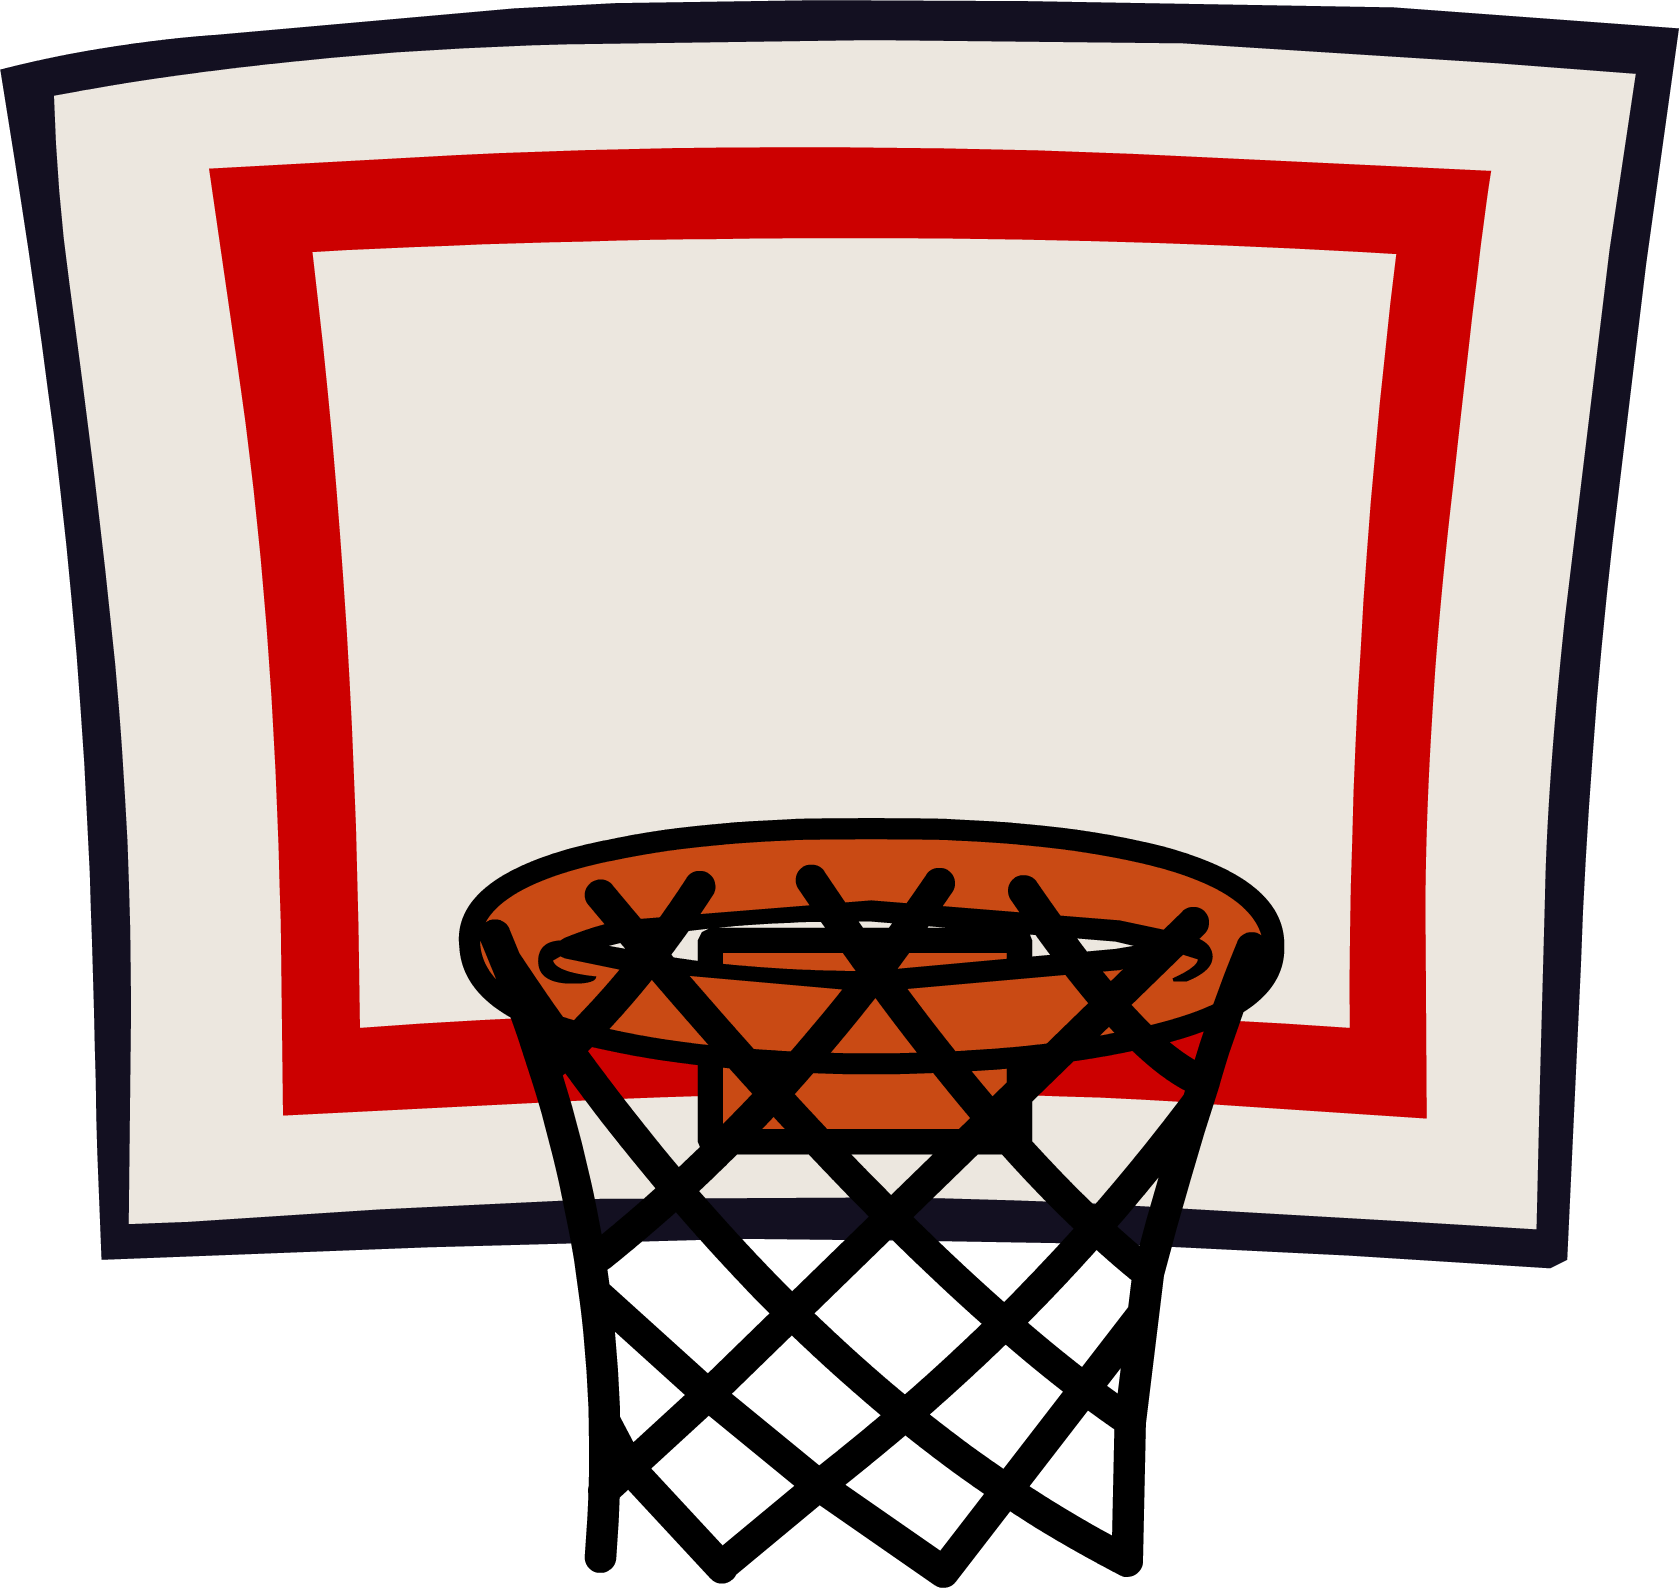 Basketball Goal Clipart Transparent.